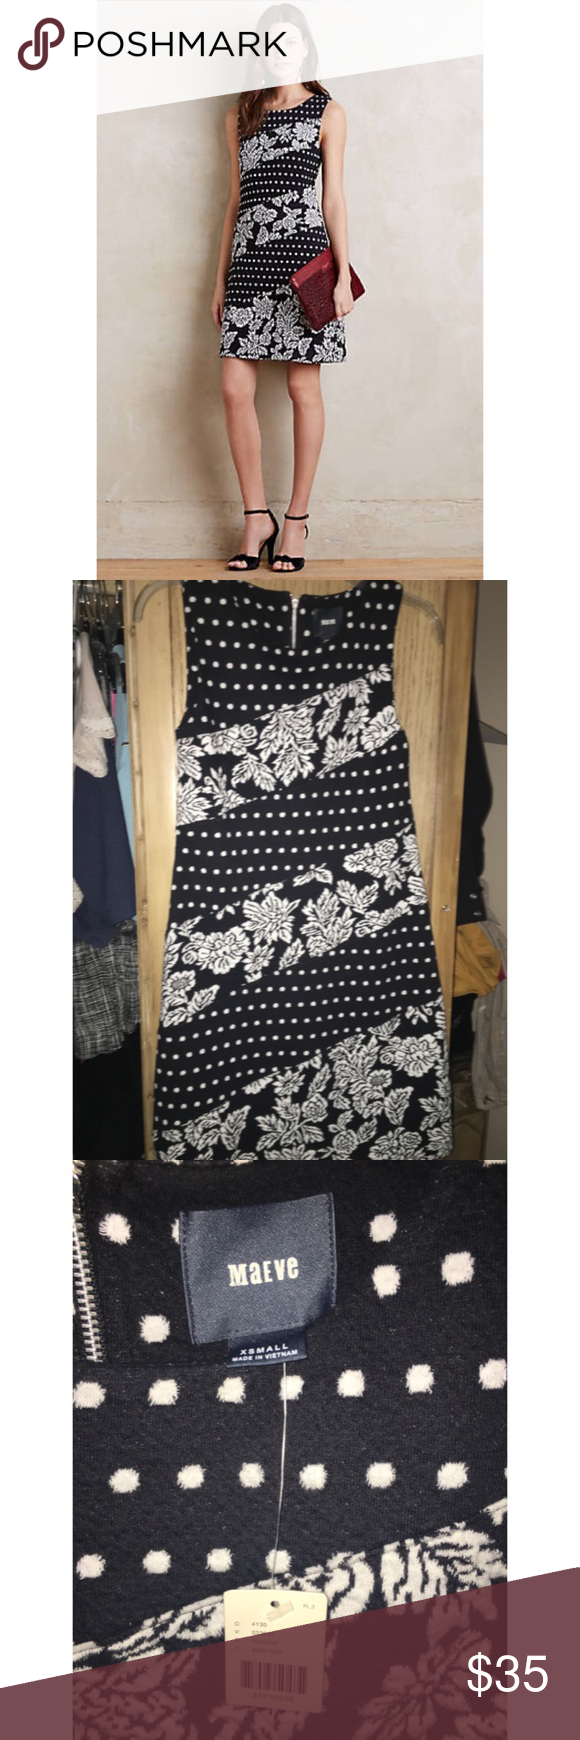 """NWT Anthropologie Effemy Jacquard Shift dress Never worn / Anthropologie Effemy Jacquard Shift black & white dress /   DETAILS:  Cotton, polyester, spandex; rayon lining Shift silhouette Back zip Machine wash Imported Style No. 4130336419680 Dimensions Regular falls 35.25"""" from shoulder Petite falls 33.5"""" from shoulder Model Notes: Model is 5'9"""" / this dress is size XS - no trades Anthropologie Dresses"""